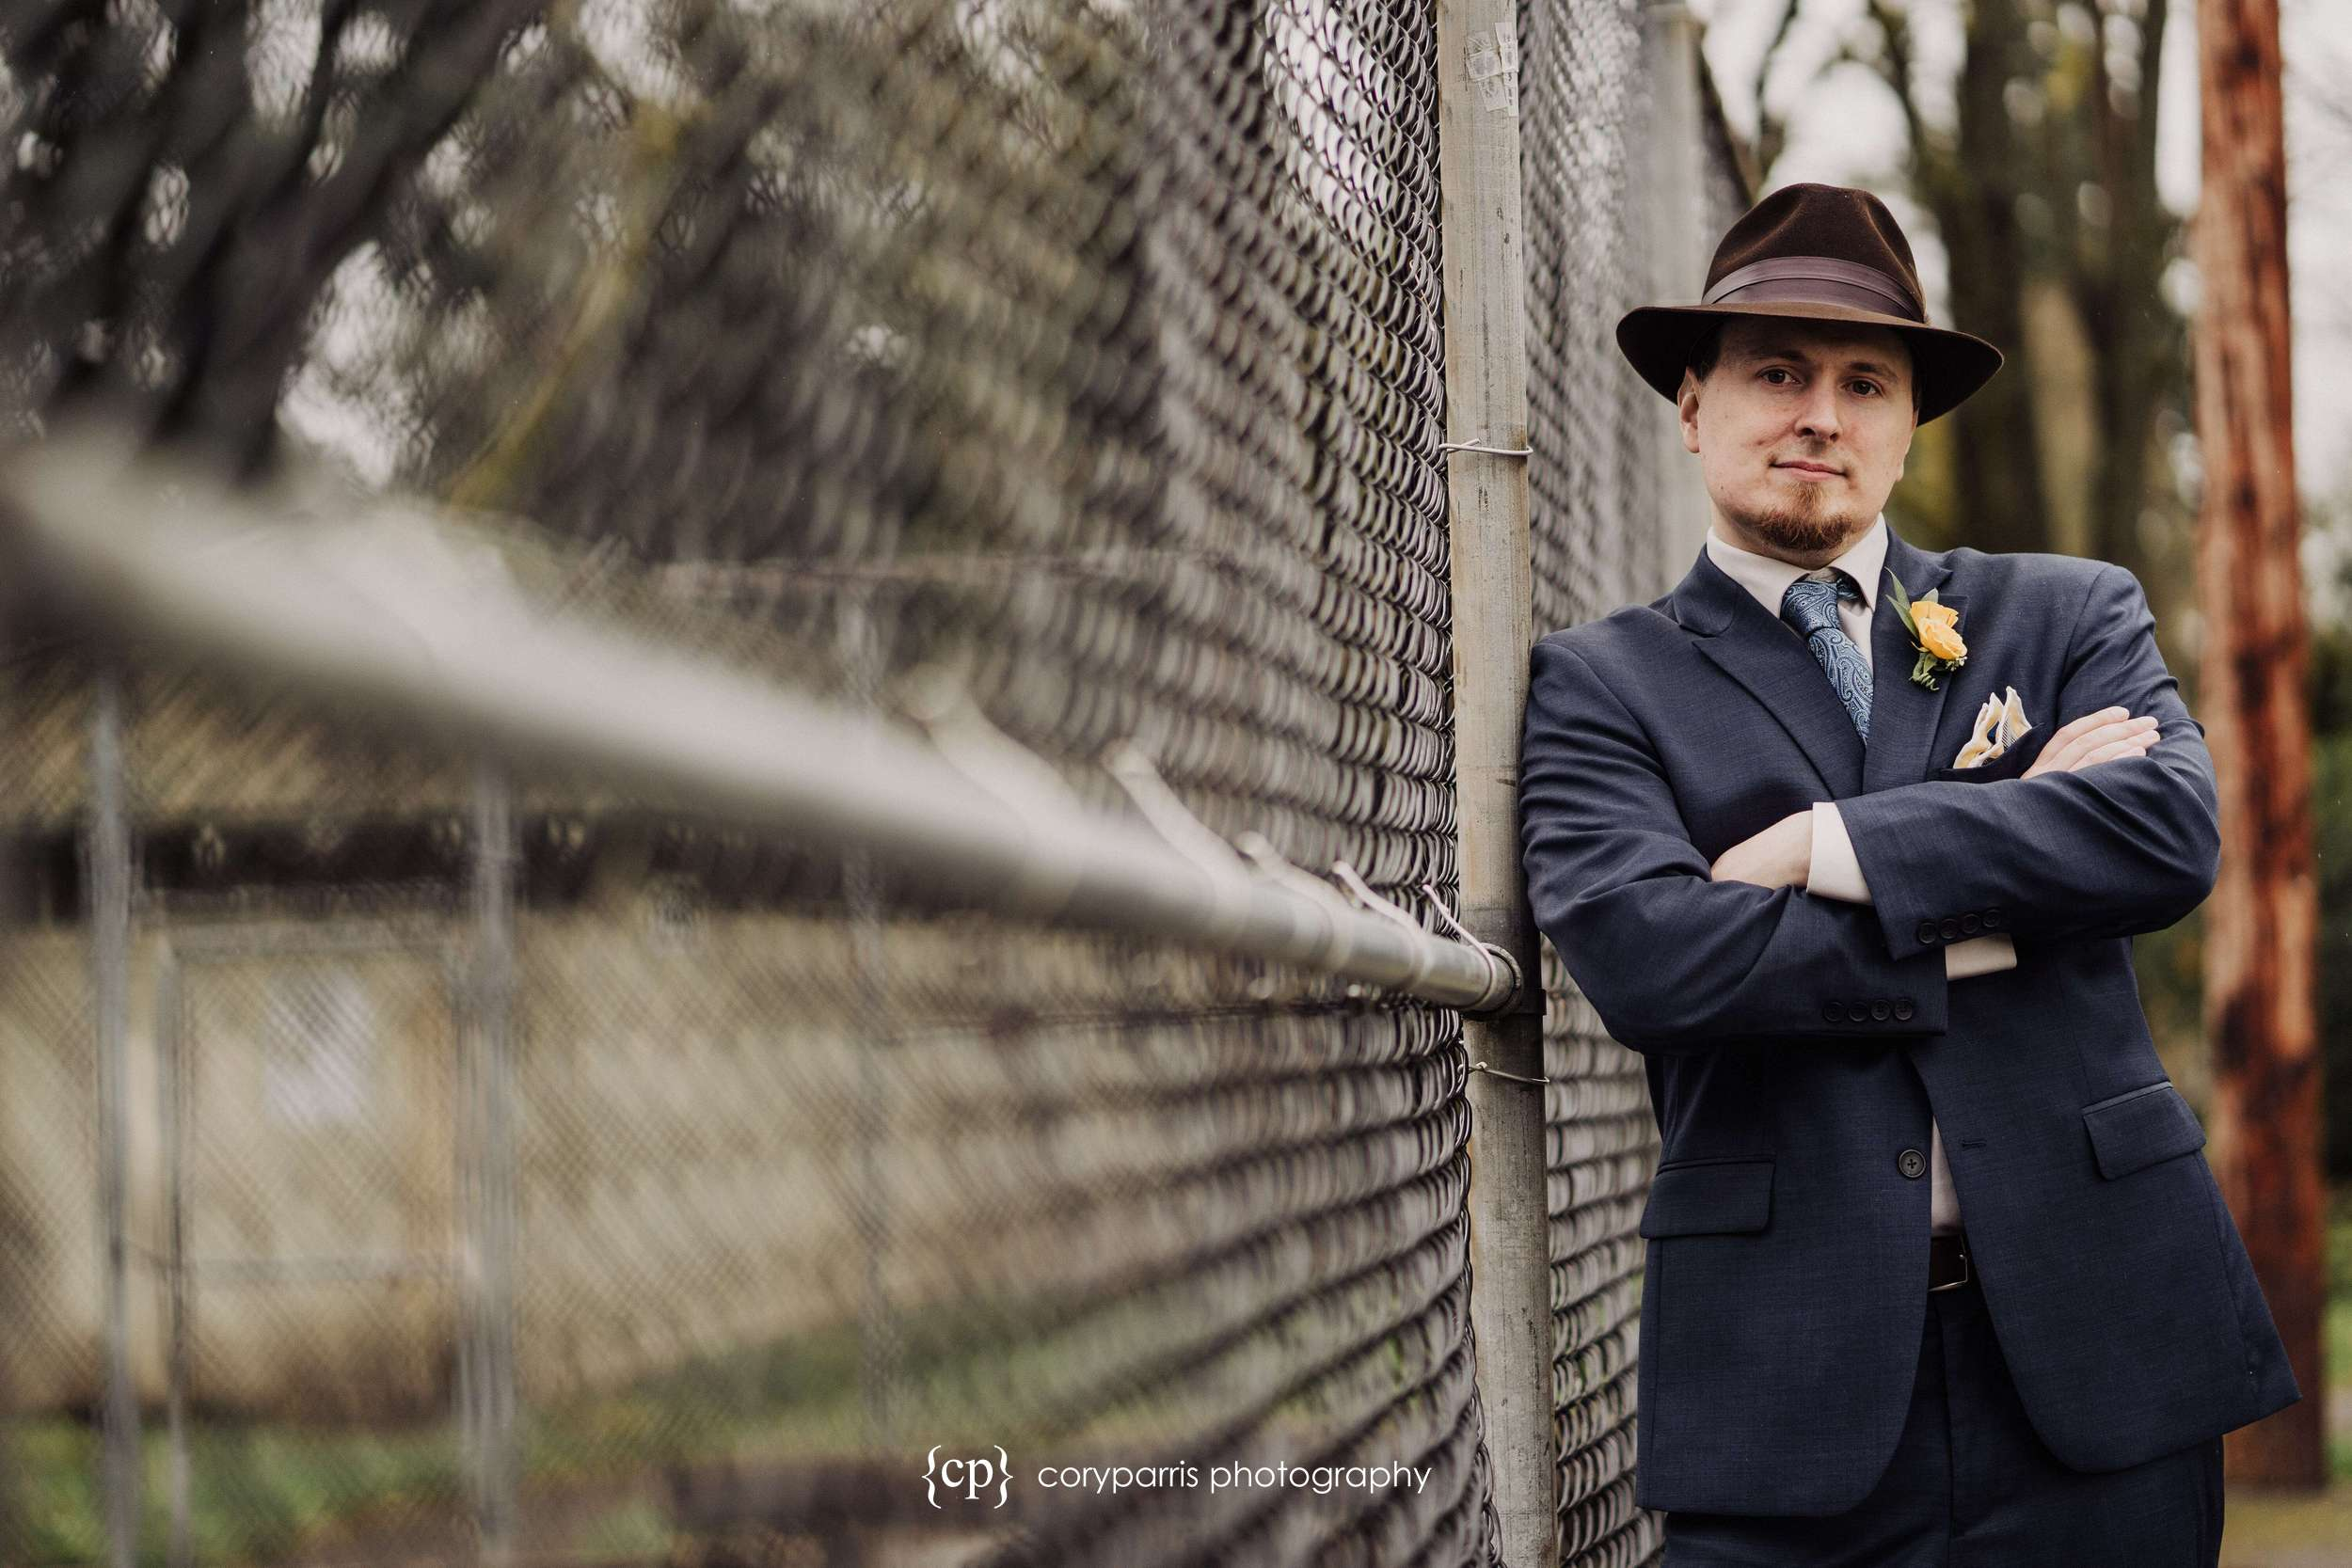 Groom in hat posing next to a fence before everett wedding